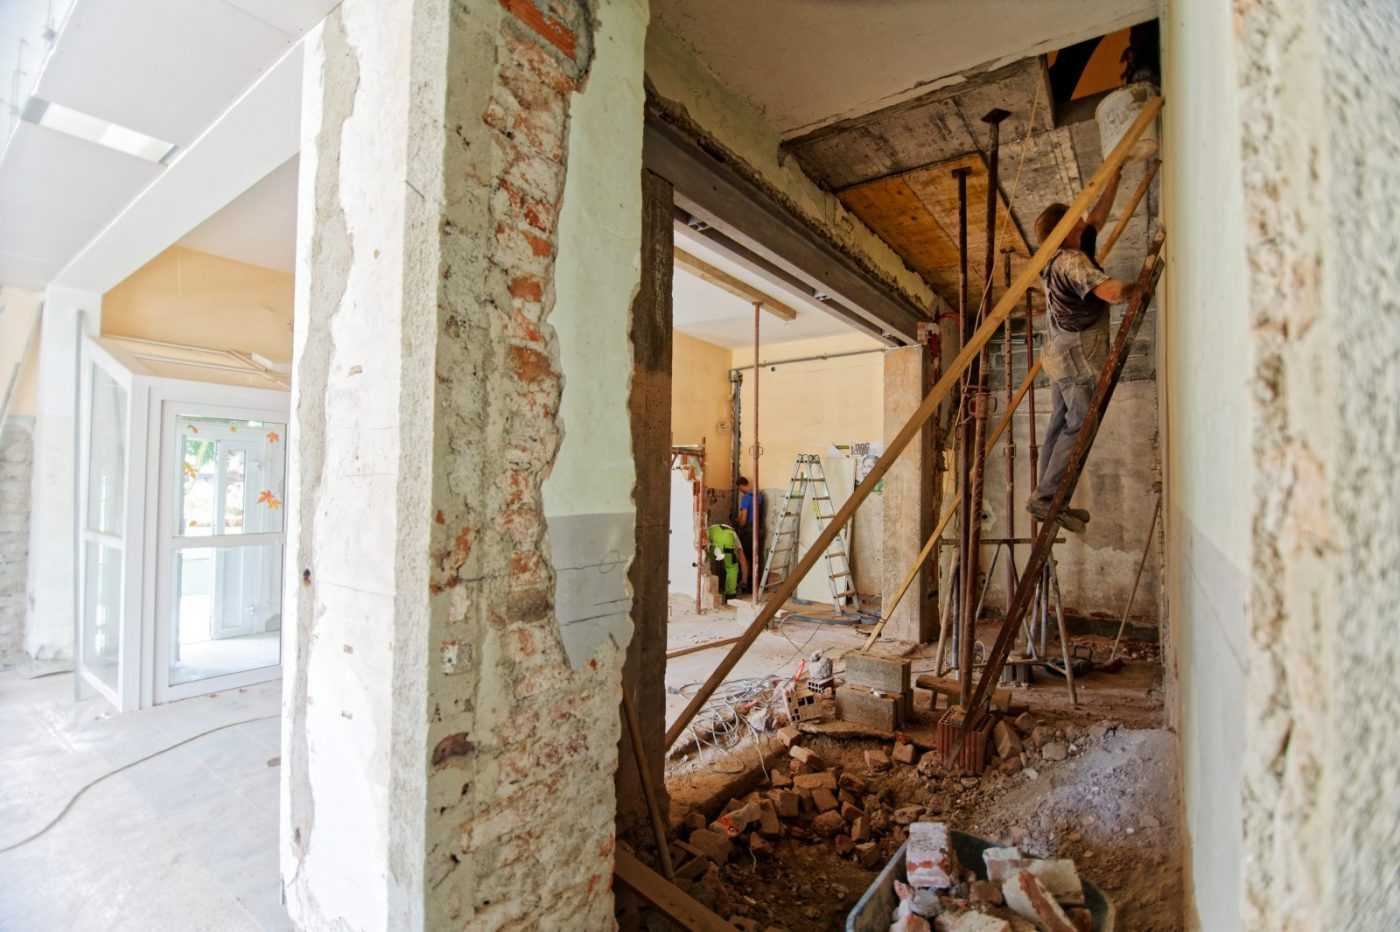 House in the process of renovation - learn how best to cope with a neighbor's renovation?